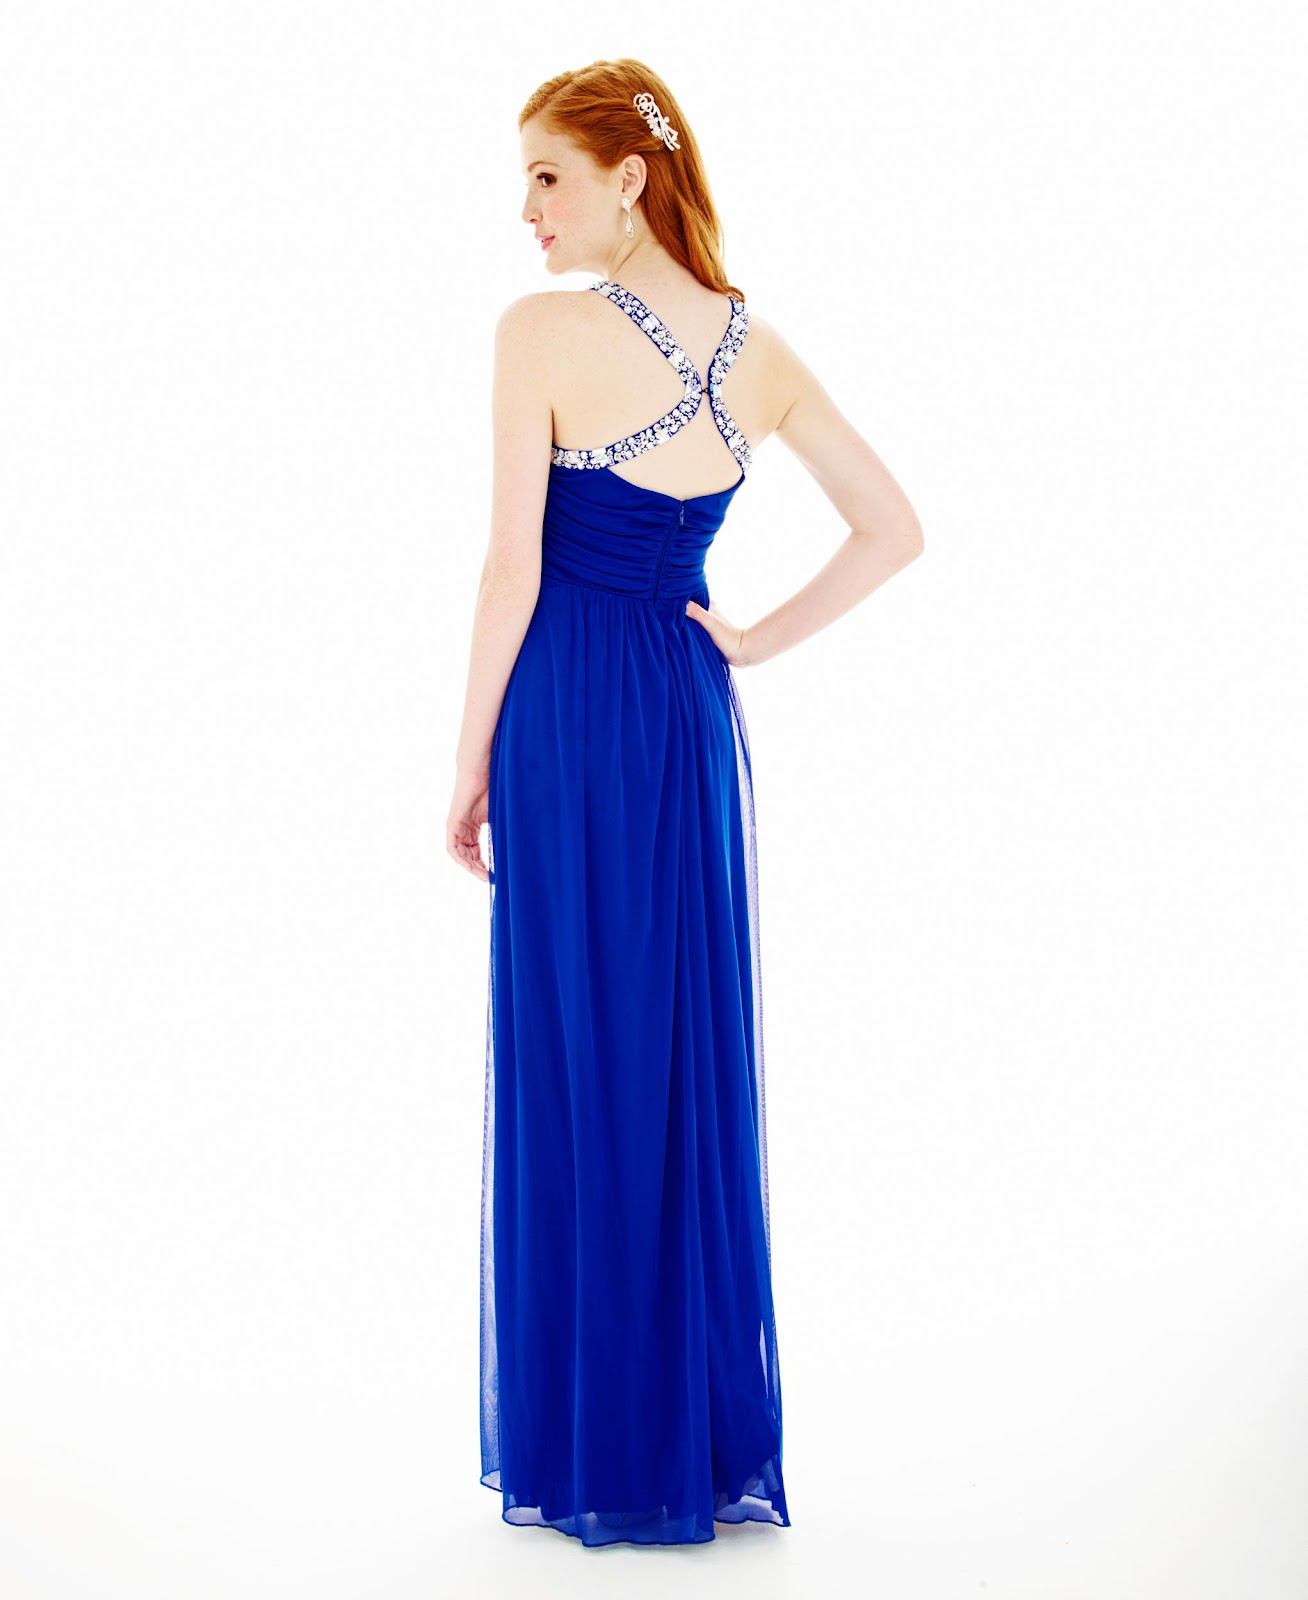 Fantastic Jc Penny Prom Dress Image Collection